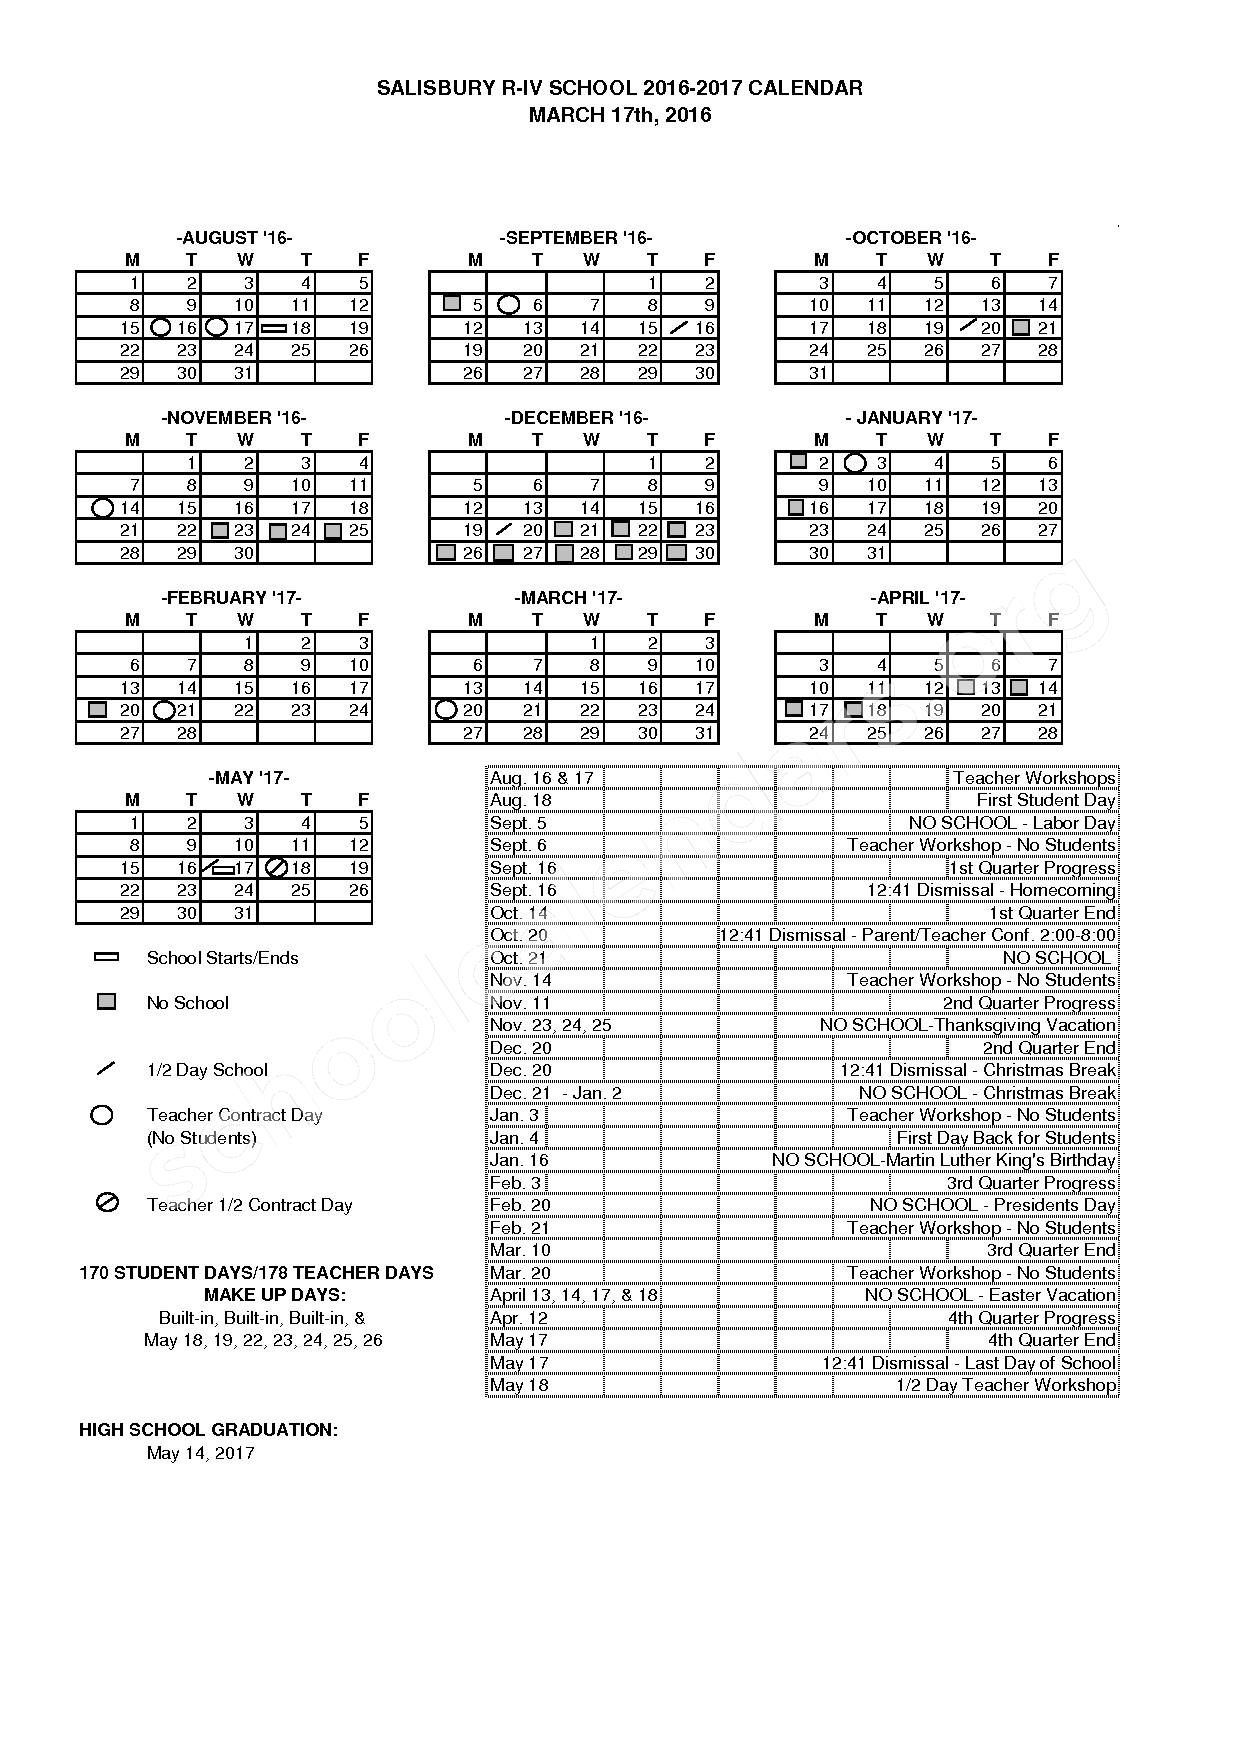 2016 - 2017 School Calendar – Salisbury R-IV School District – page 1